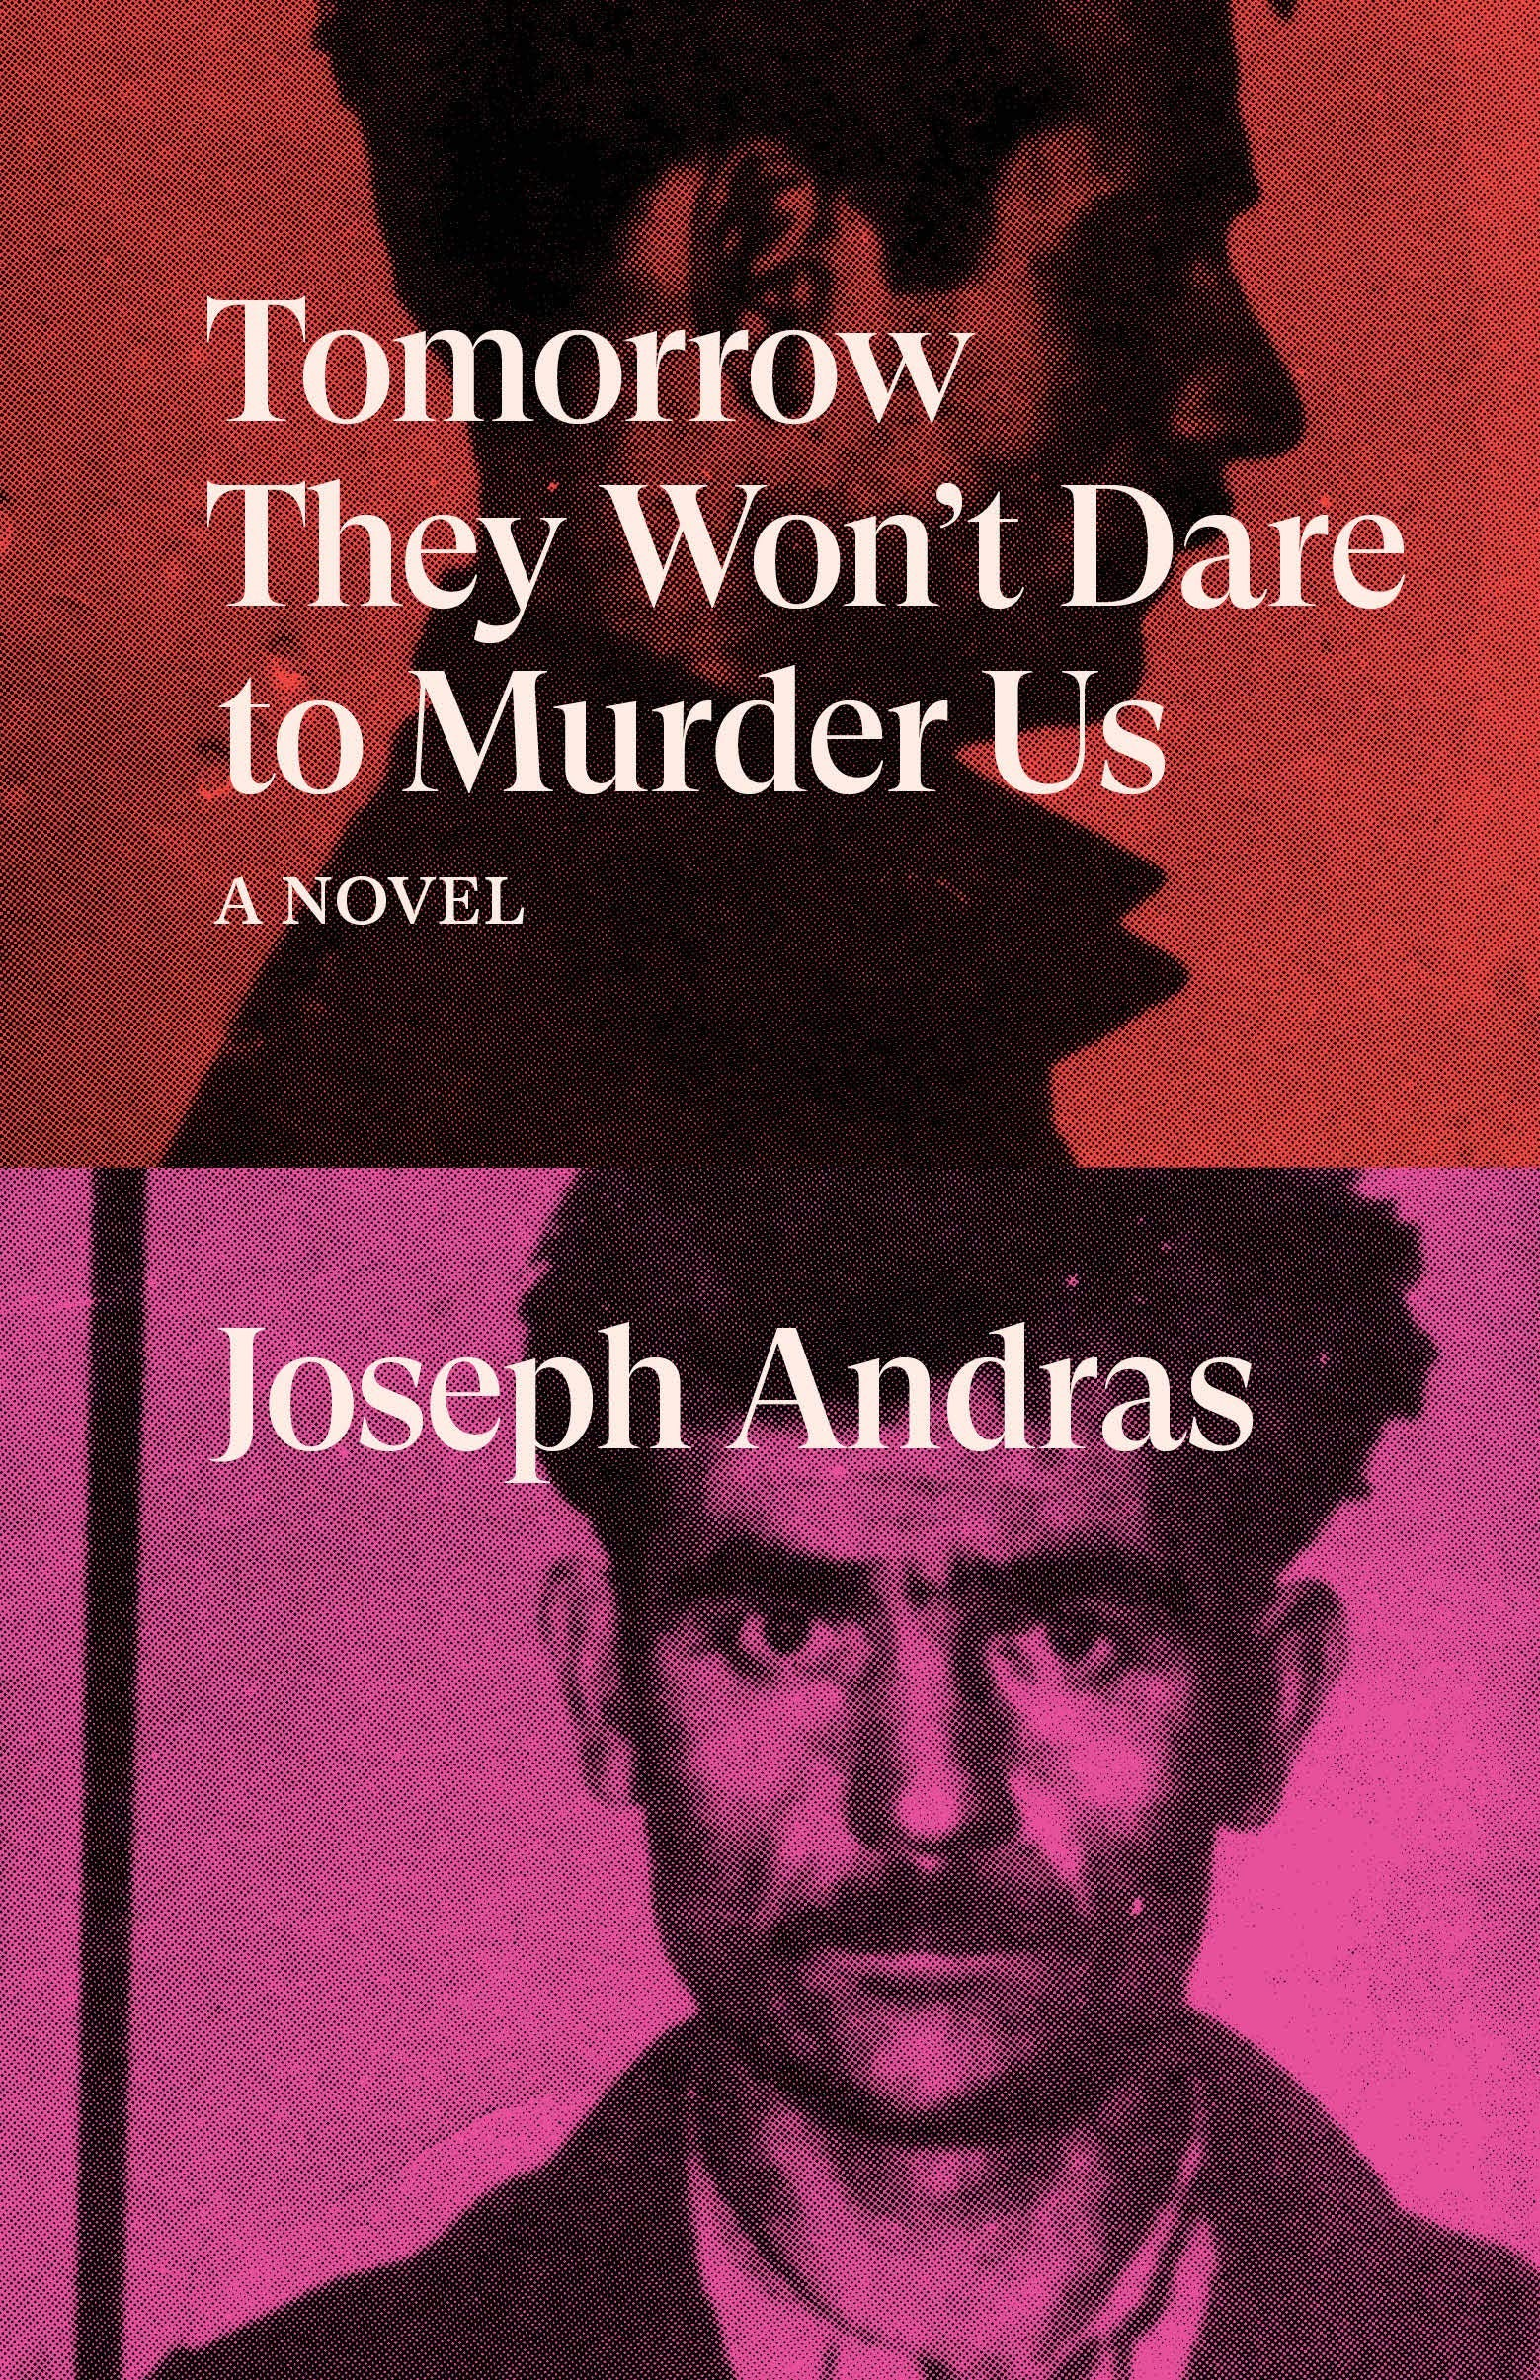 Joseph Andras: Tomorrow They Won't Dare to Murder Us